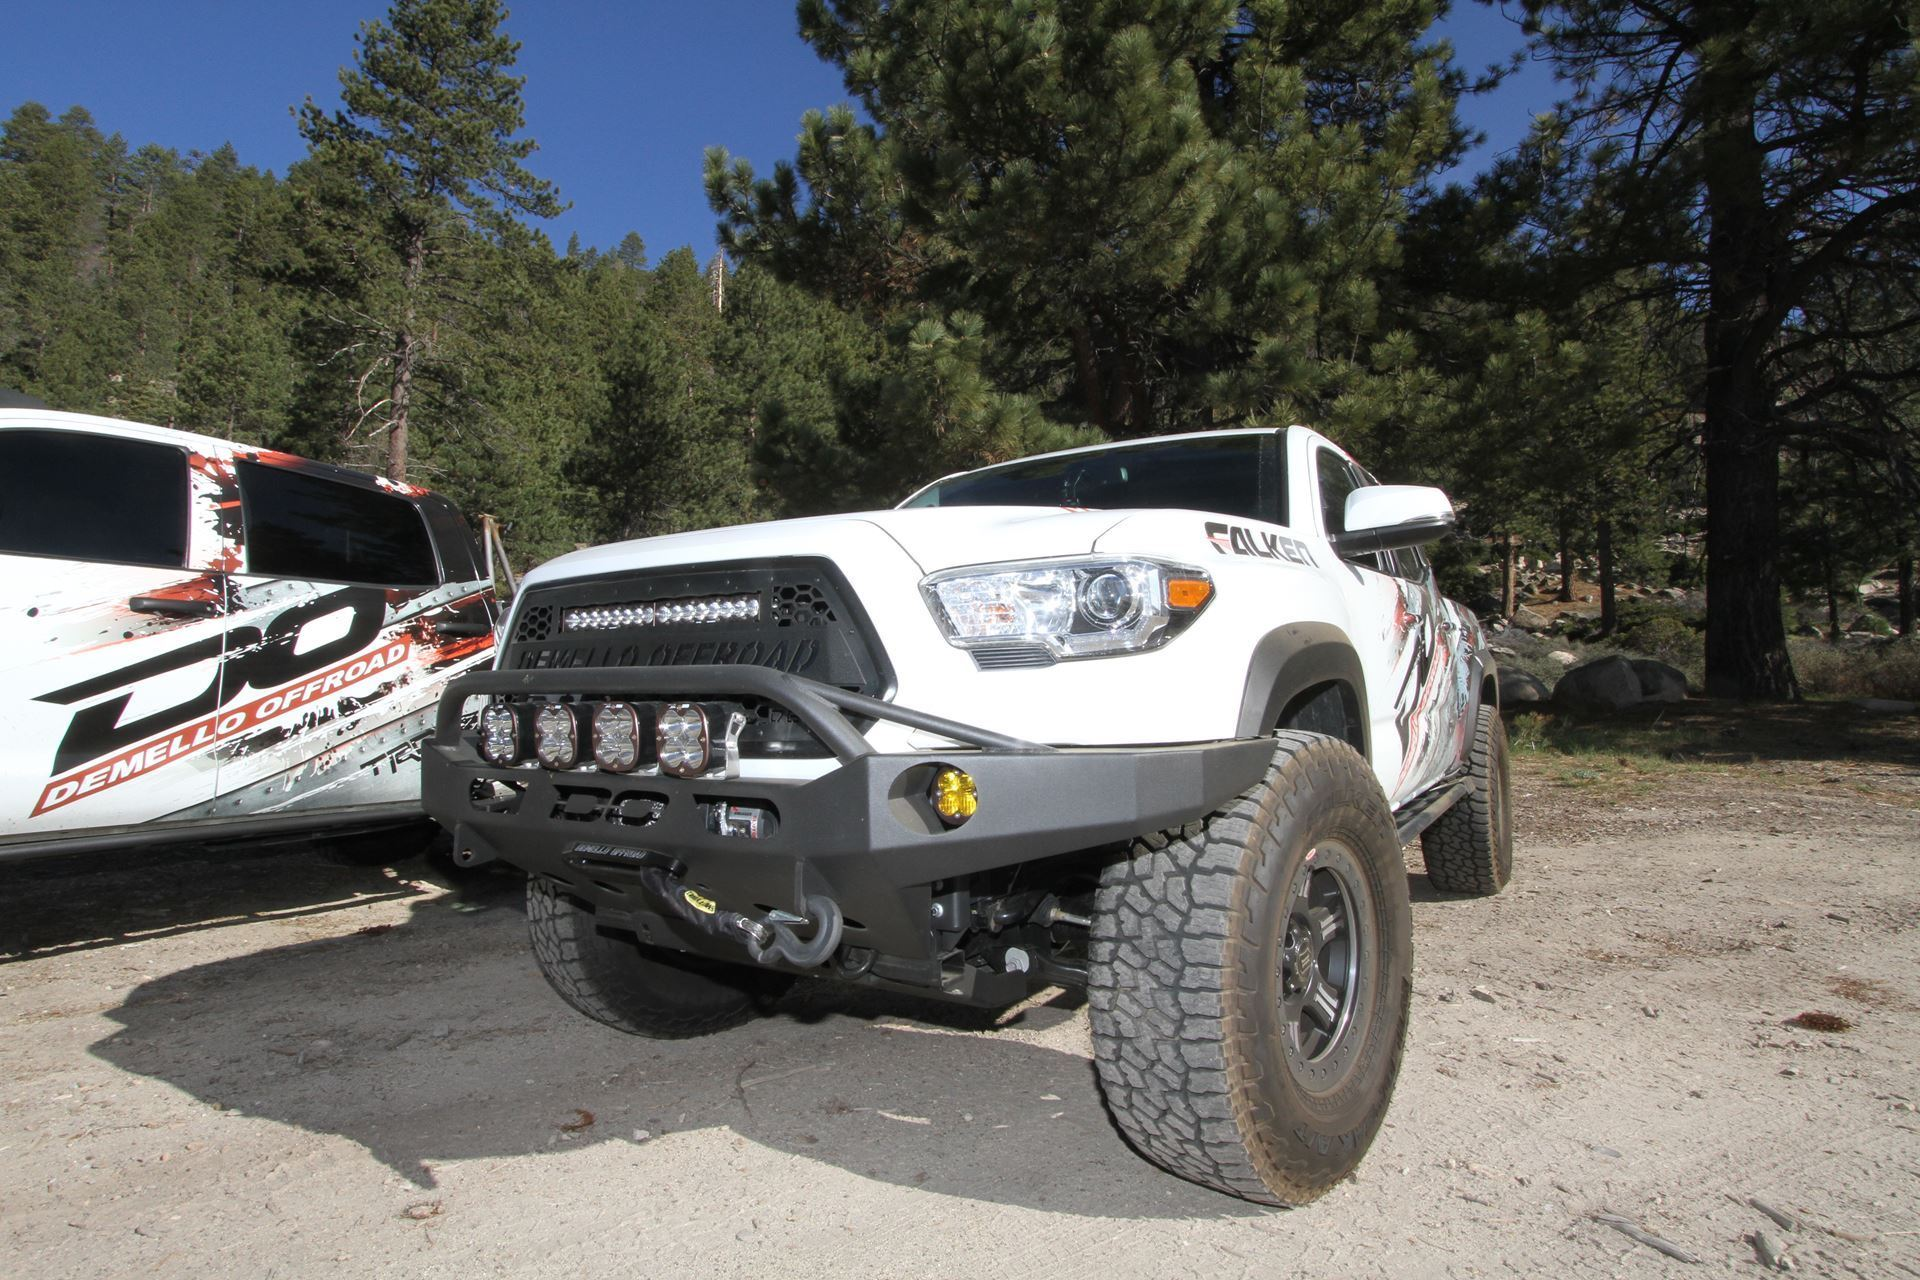 Demello Off-Road Tacoma Baja Front Bumper 16-18 Powder coated